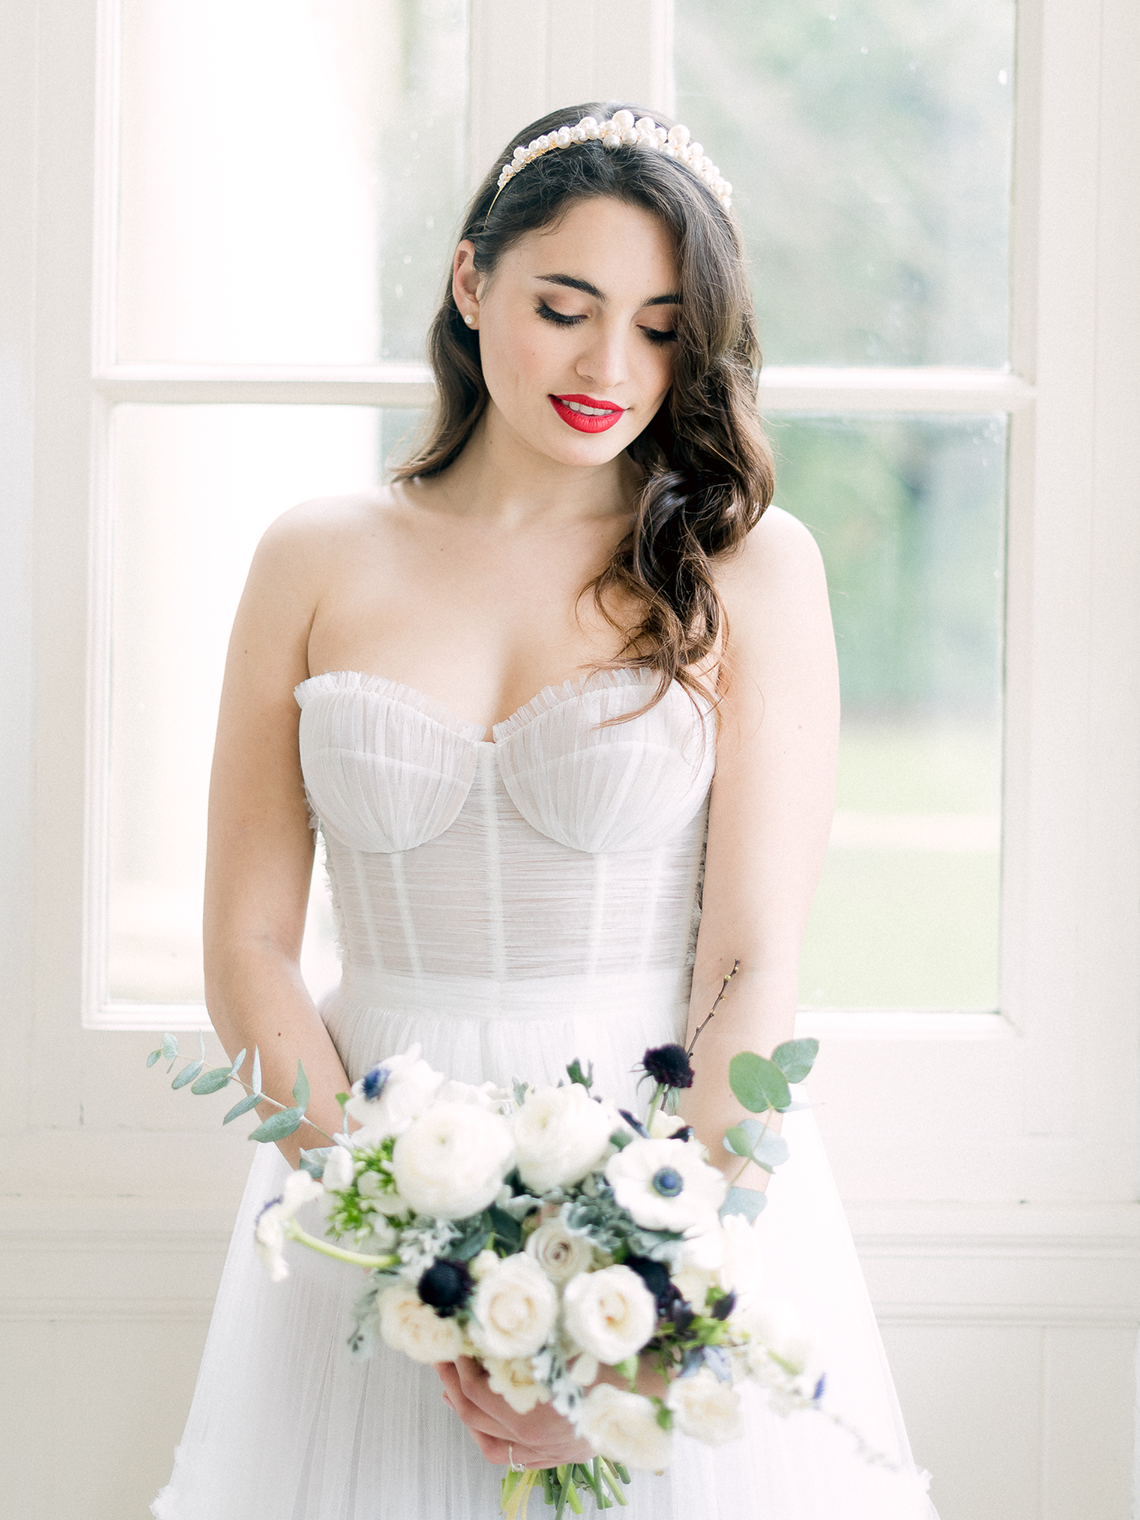 Upscale English Wedding Inspiration at Pylewell Park – Julie Michaelsen Photography 27